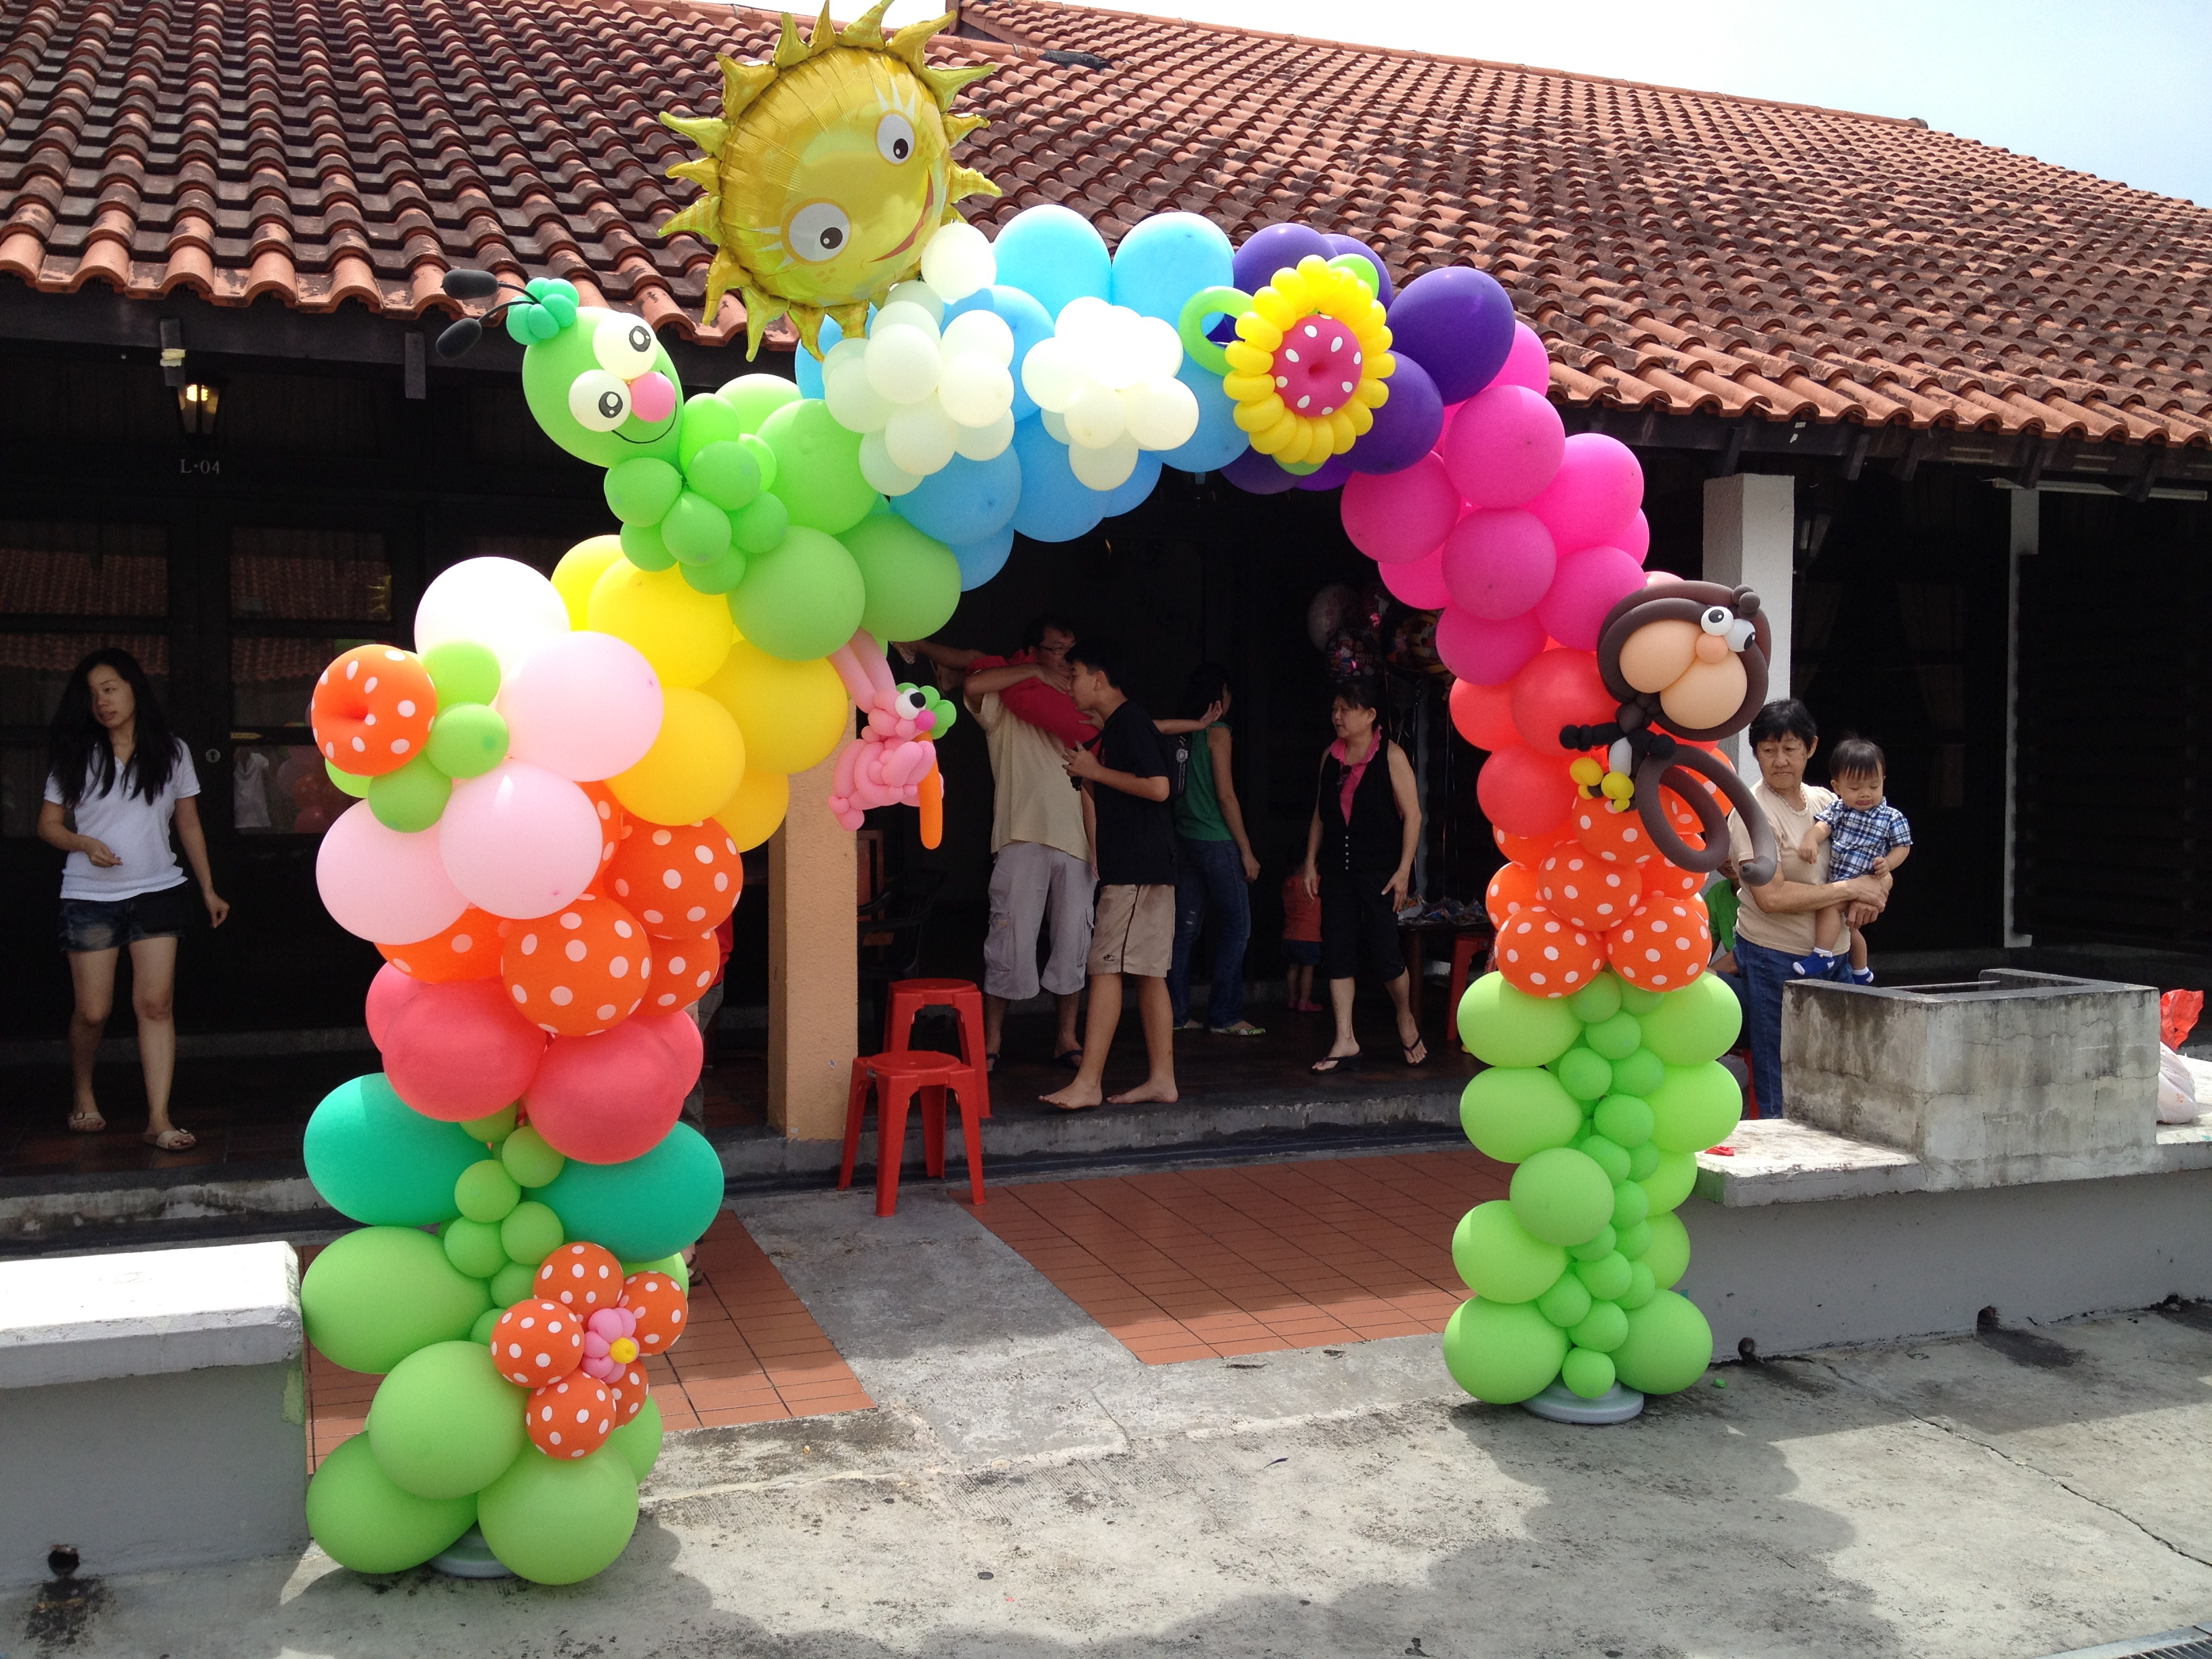 singapore customised balloon arch that balloons ForArch Balloons Decoration